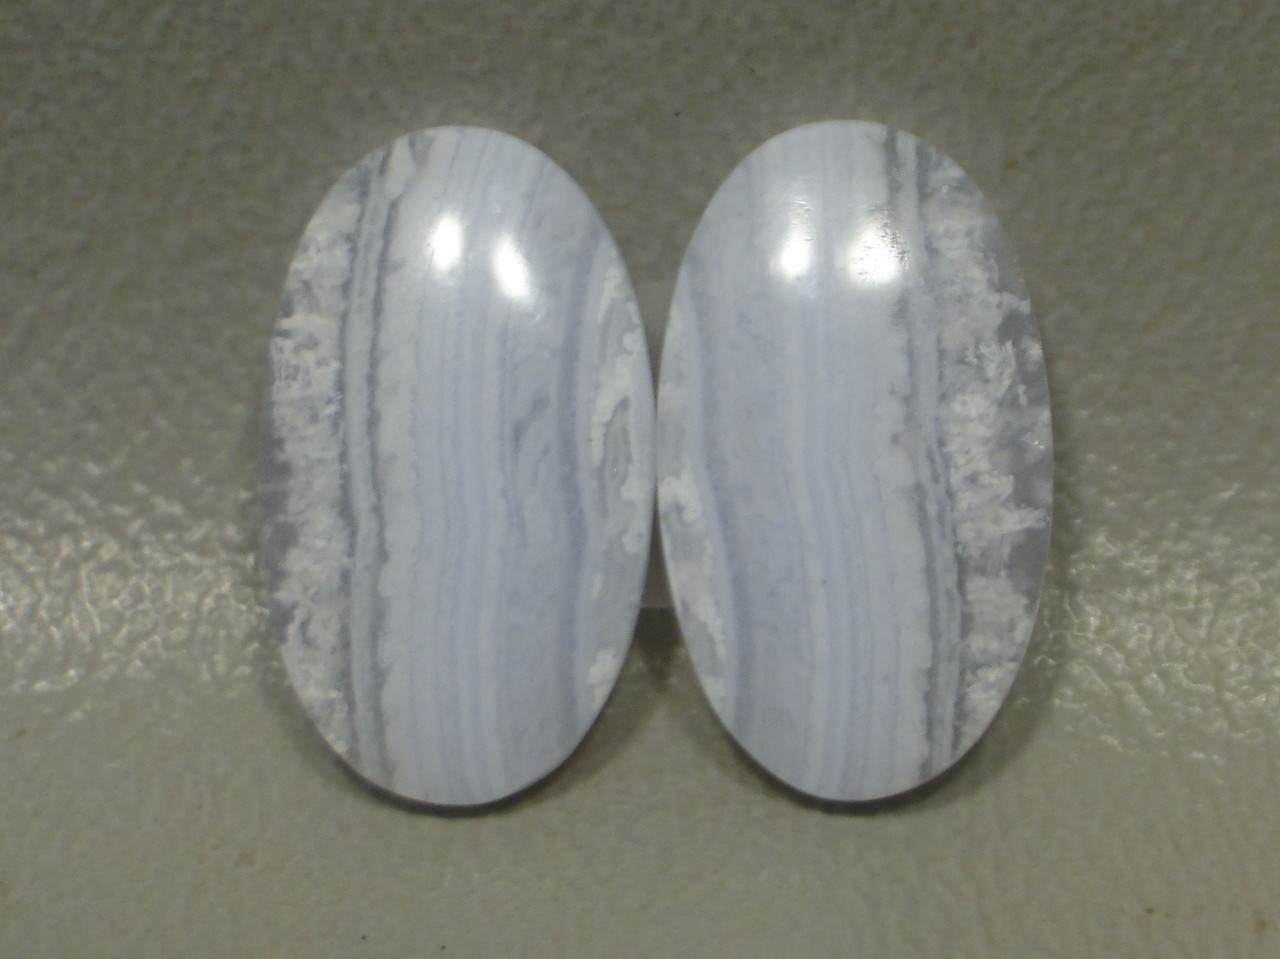 Blue Lace Agate Matched Pair Cabochons #16